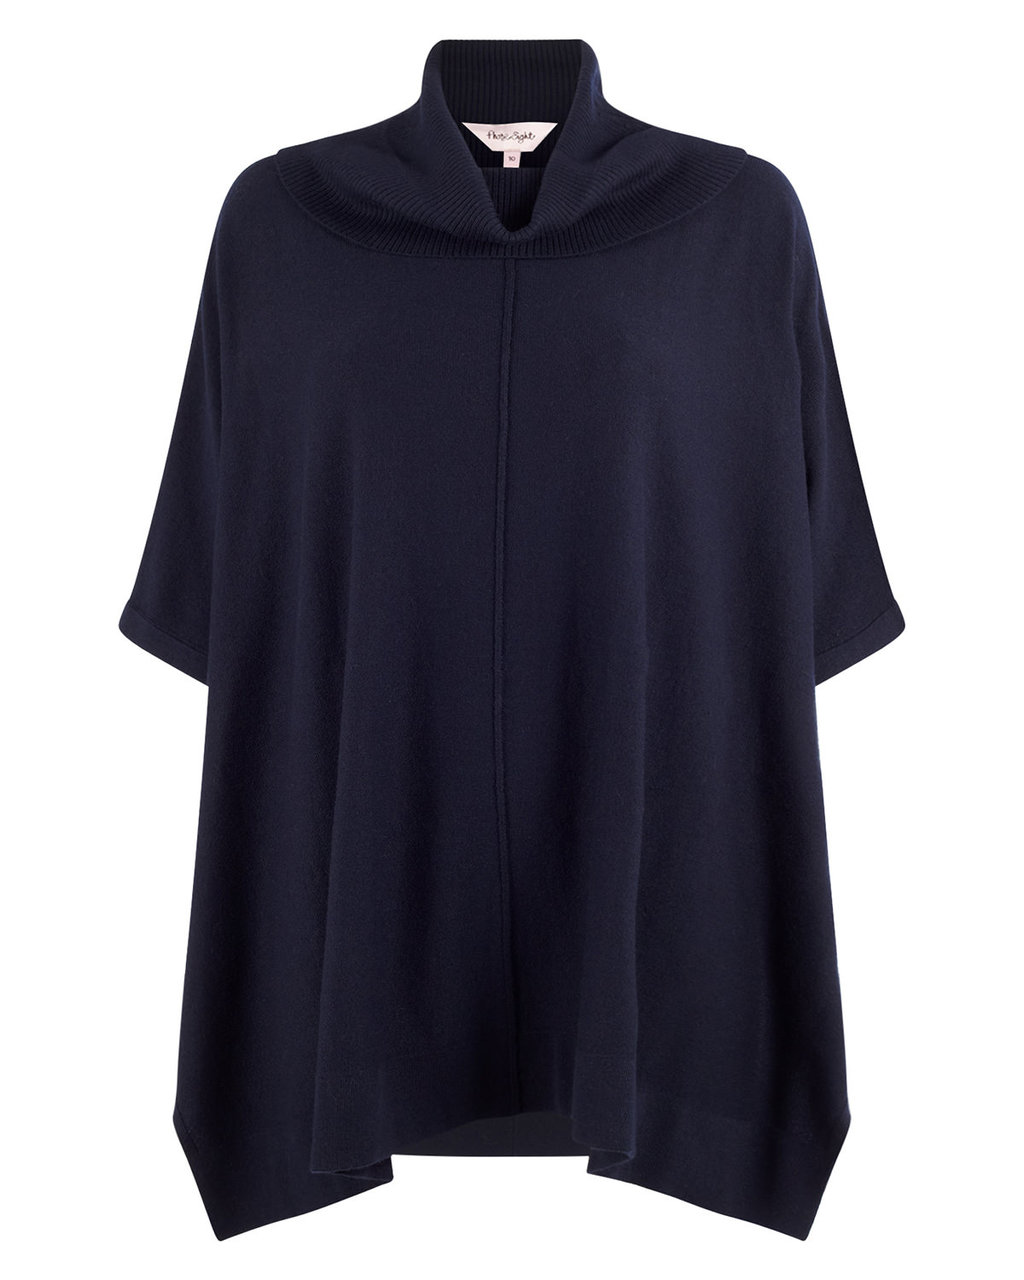 Petula Poncho - sleeve style: dolman/batwing; pattern: plain; length: below the bottom; neckline: roll neck; style: poncho; predominant colour: navy; occasions: casual, creative work; fibres: polyester/polyamide - mix; fit: loose; sleeve length: half sleeve; texture group: knits/crochet; pattern type: knitted - other; season: a/w 2015; wardrobe: highlight